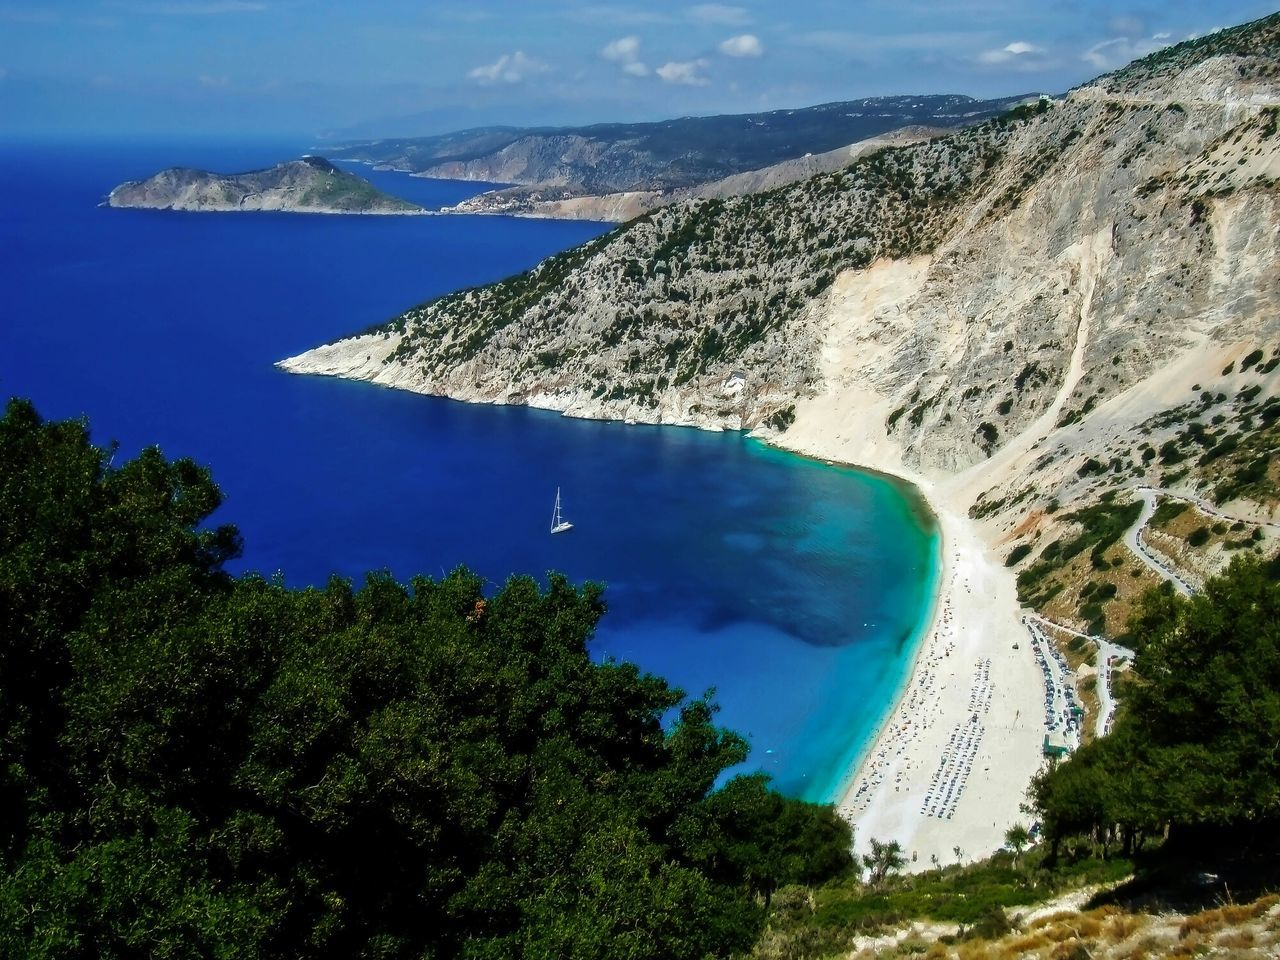 My Best Photo 2015 Showcase: December Greece Landscape Sea Summer Beach Nature Coast Coastline Island Kefalonia Myrtos